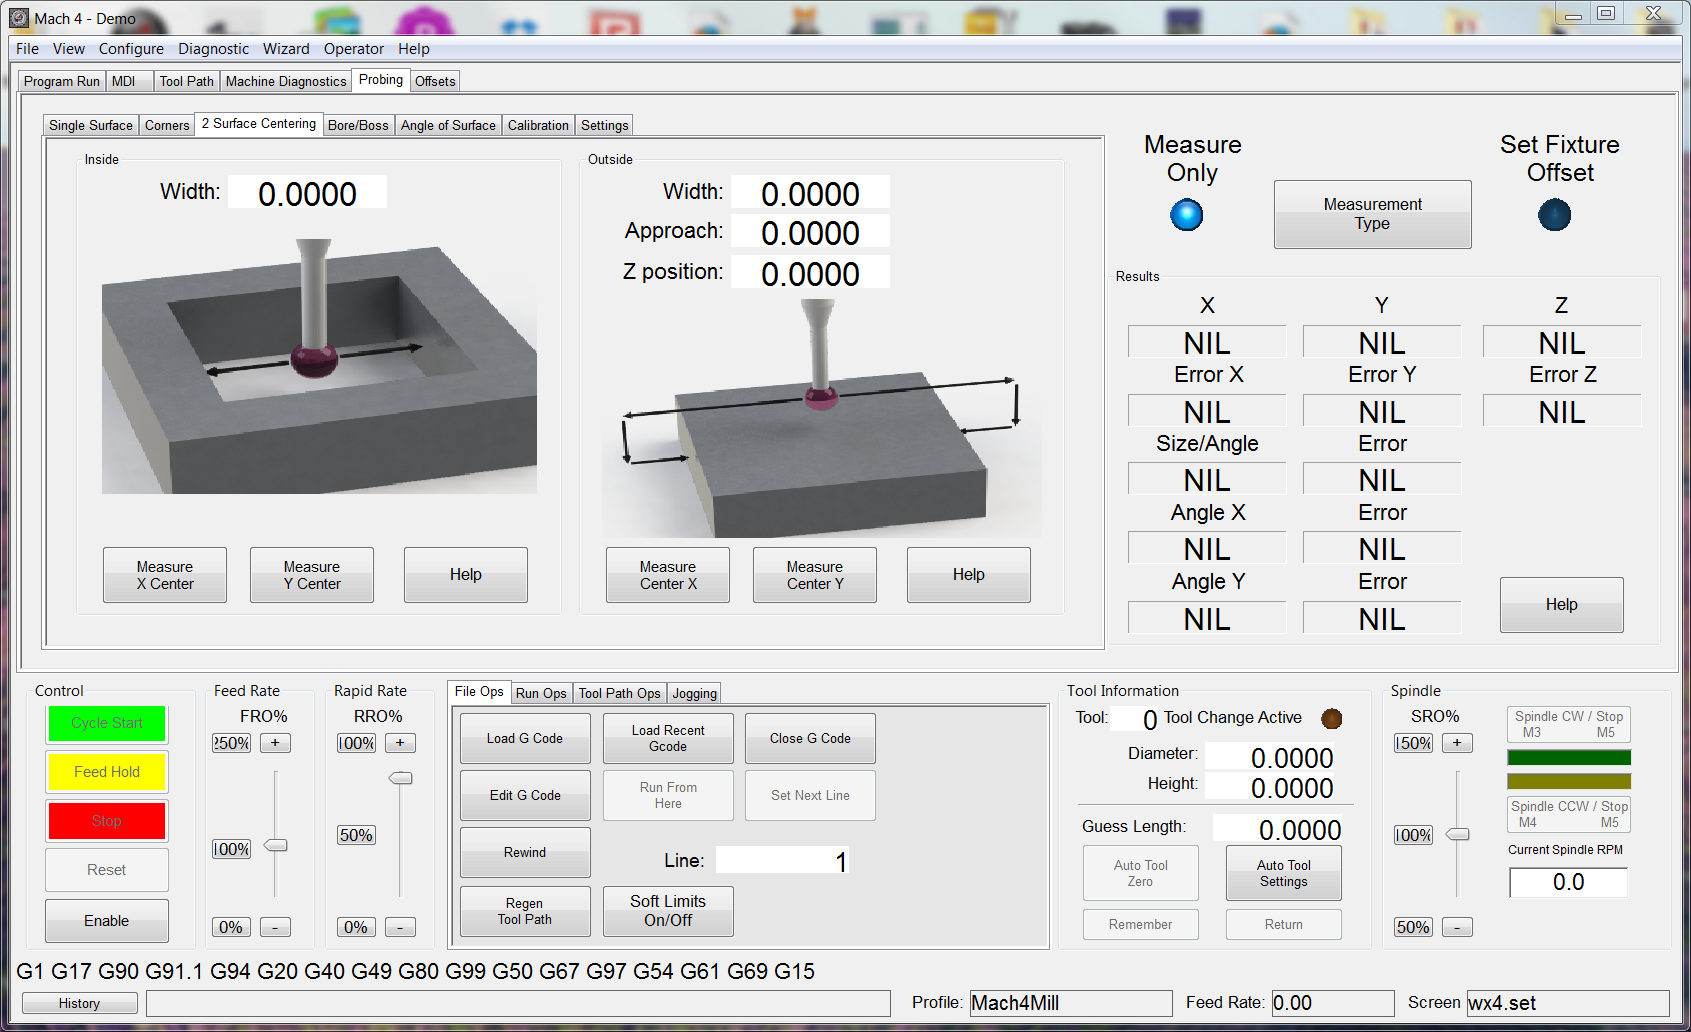 Mach3 cnc control software for windows 32 bit systems - Mach4 2_2_surface_probe